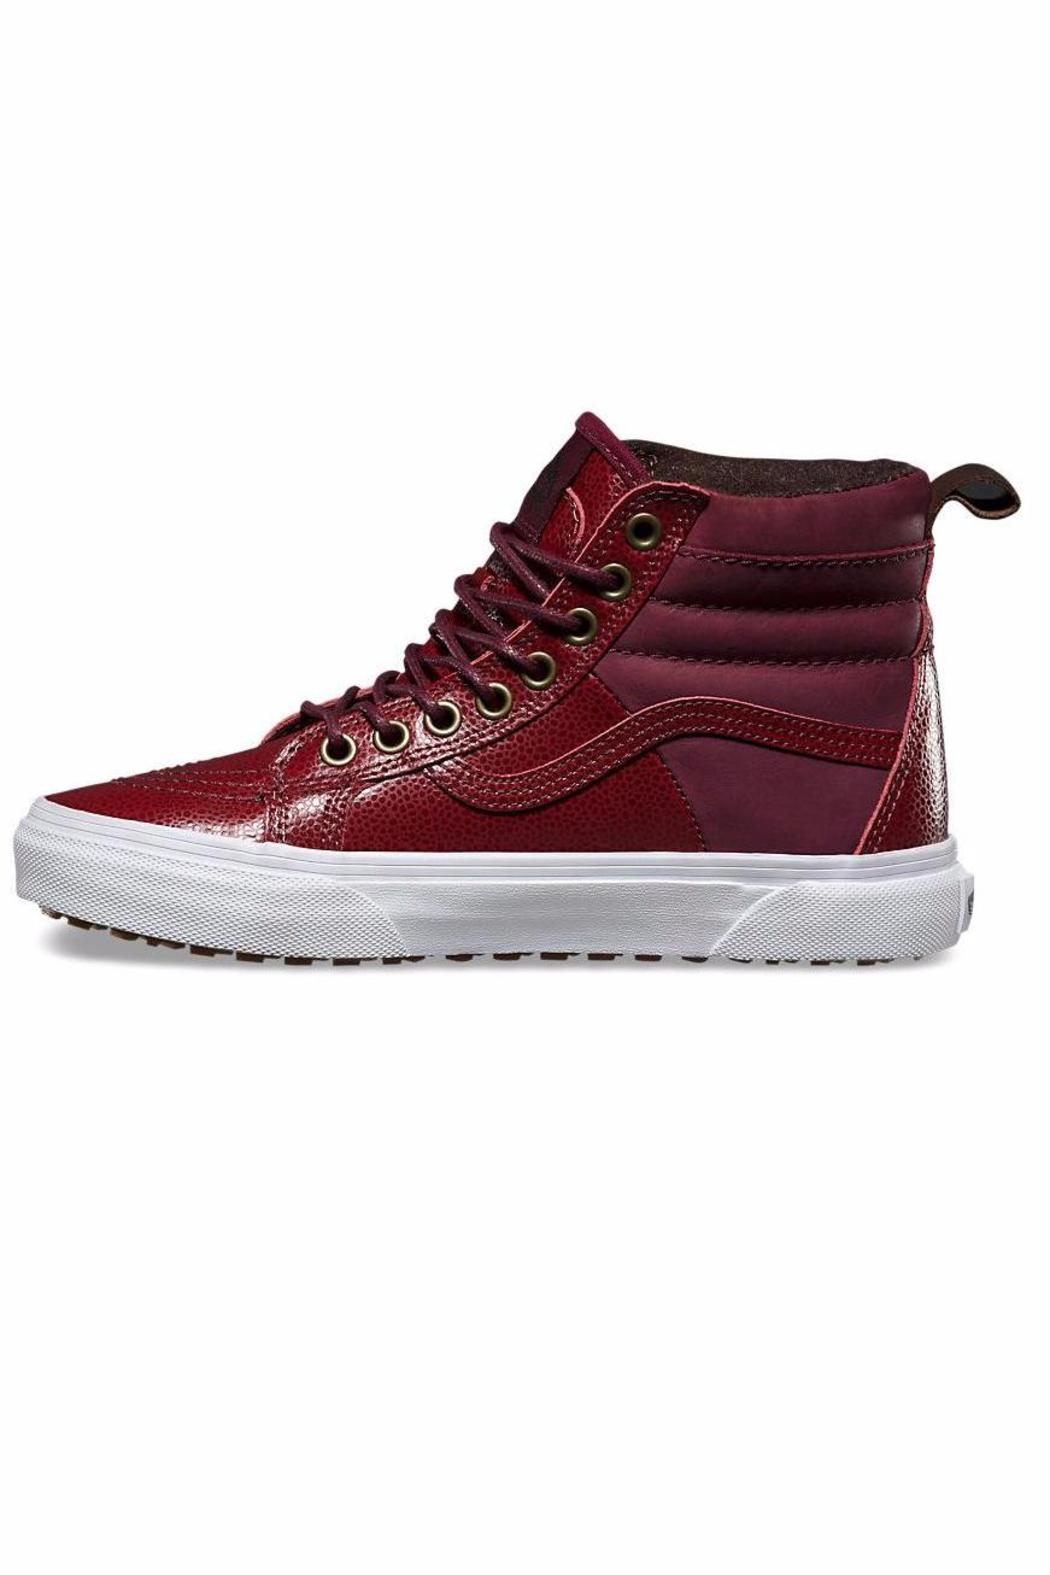 Vans Pebble Leather Hightop from